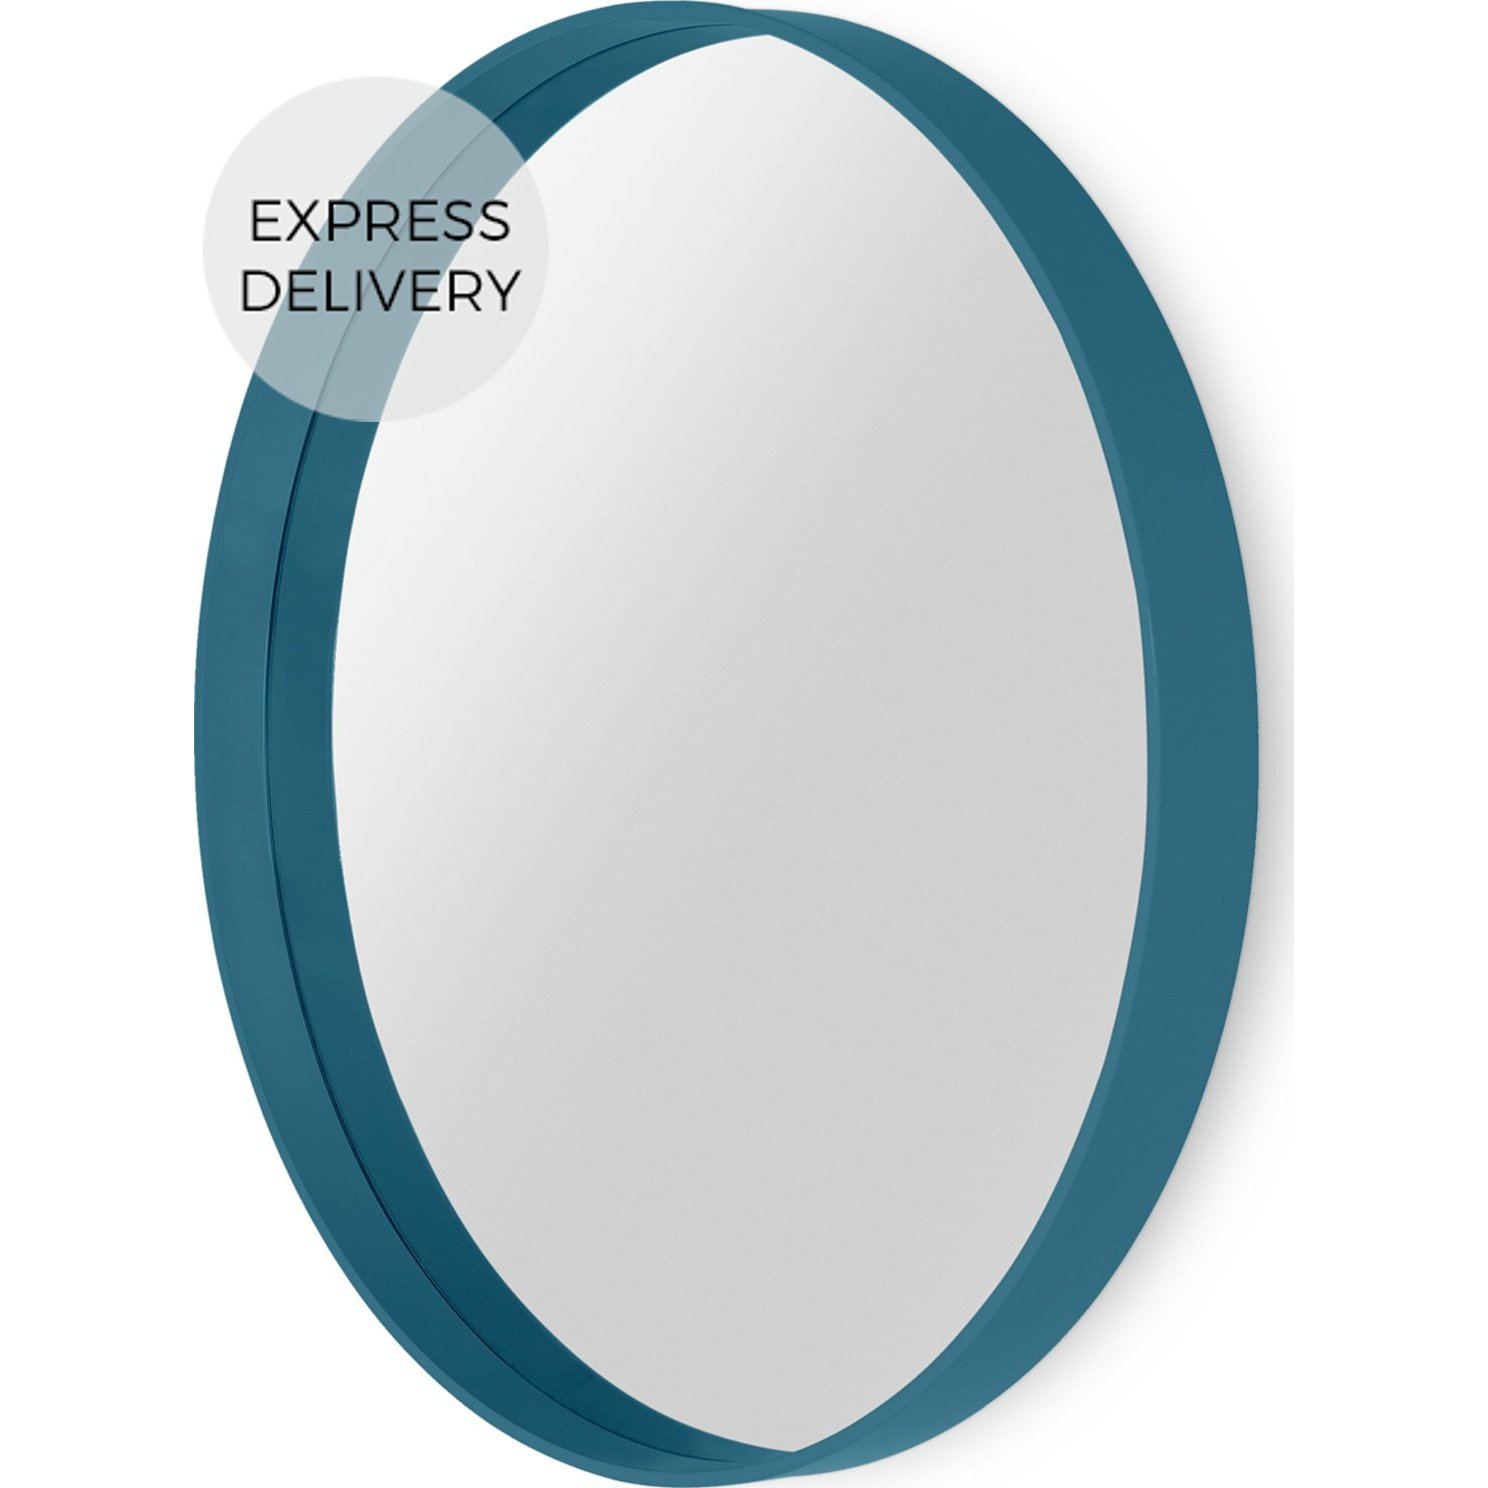 image-MADE Essentials Bex Large Round Mirror 76cm, Teal Green